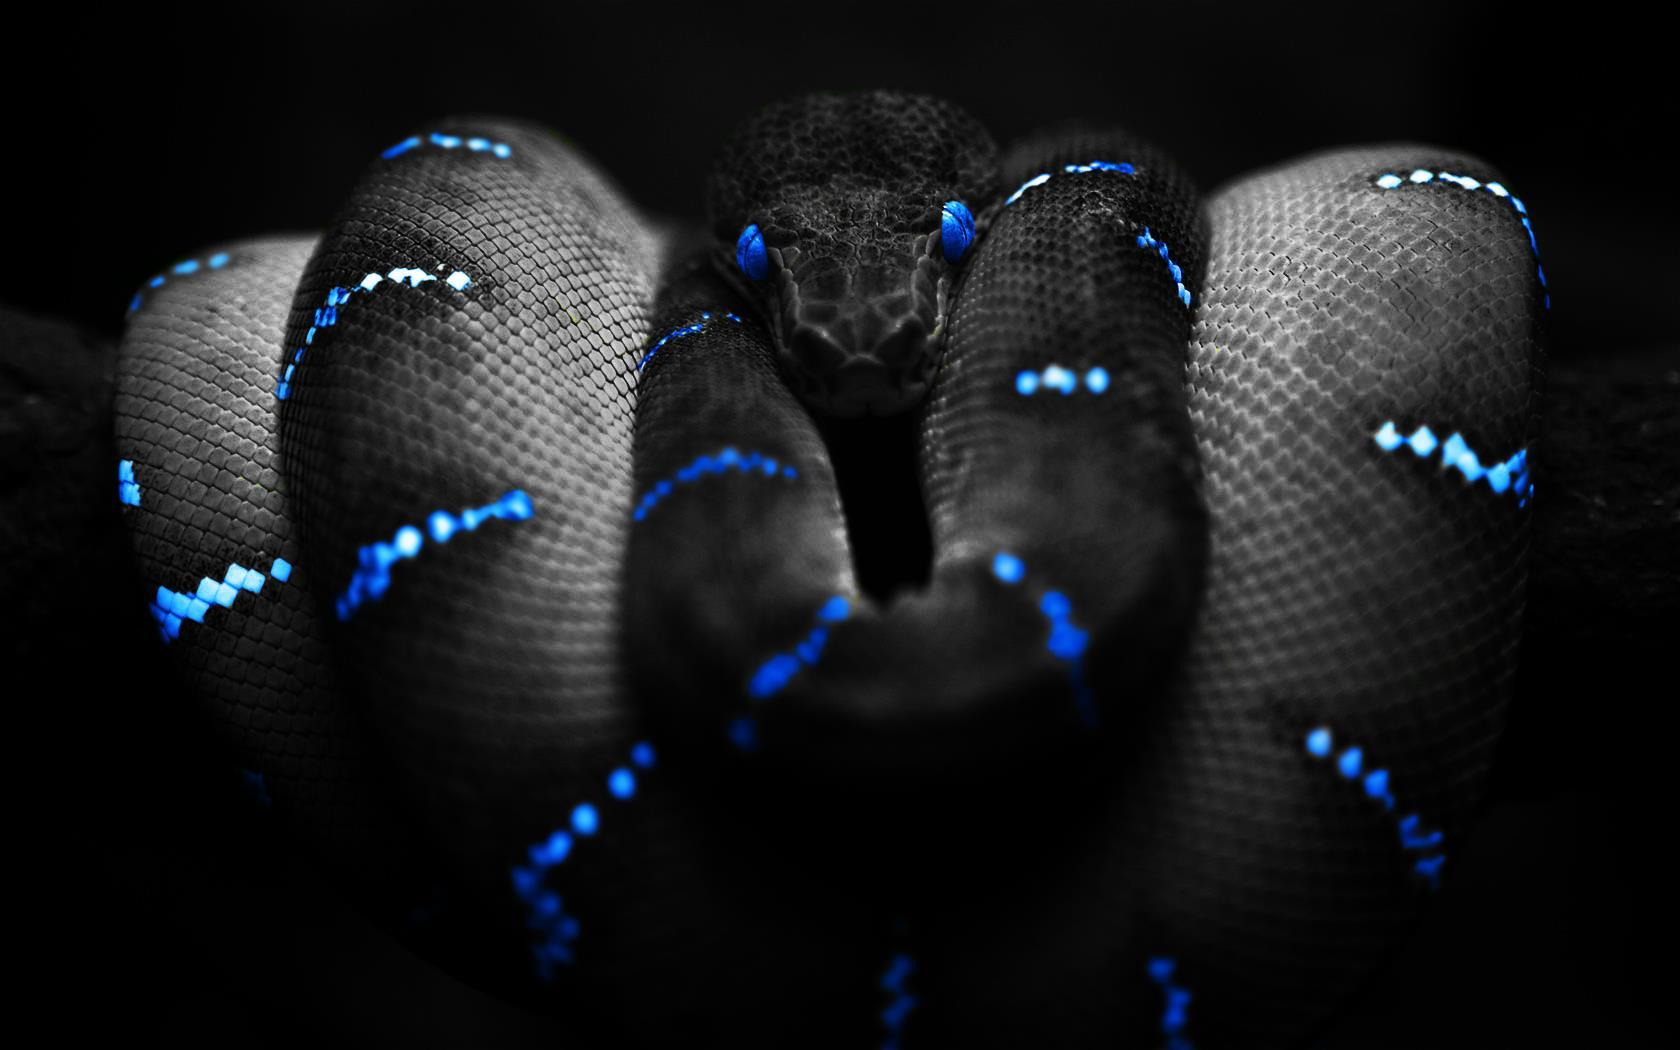 serpent-fonds-d-ecran-effets-lumiere-et-retouche-photo_05